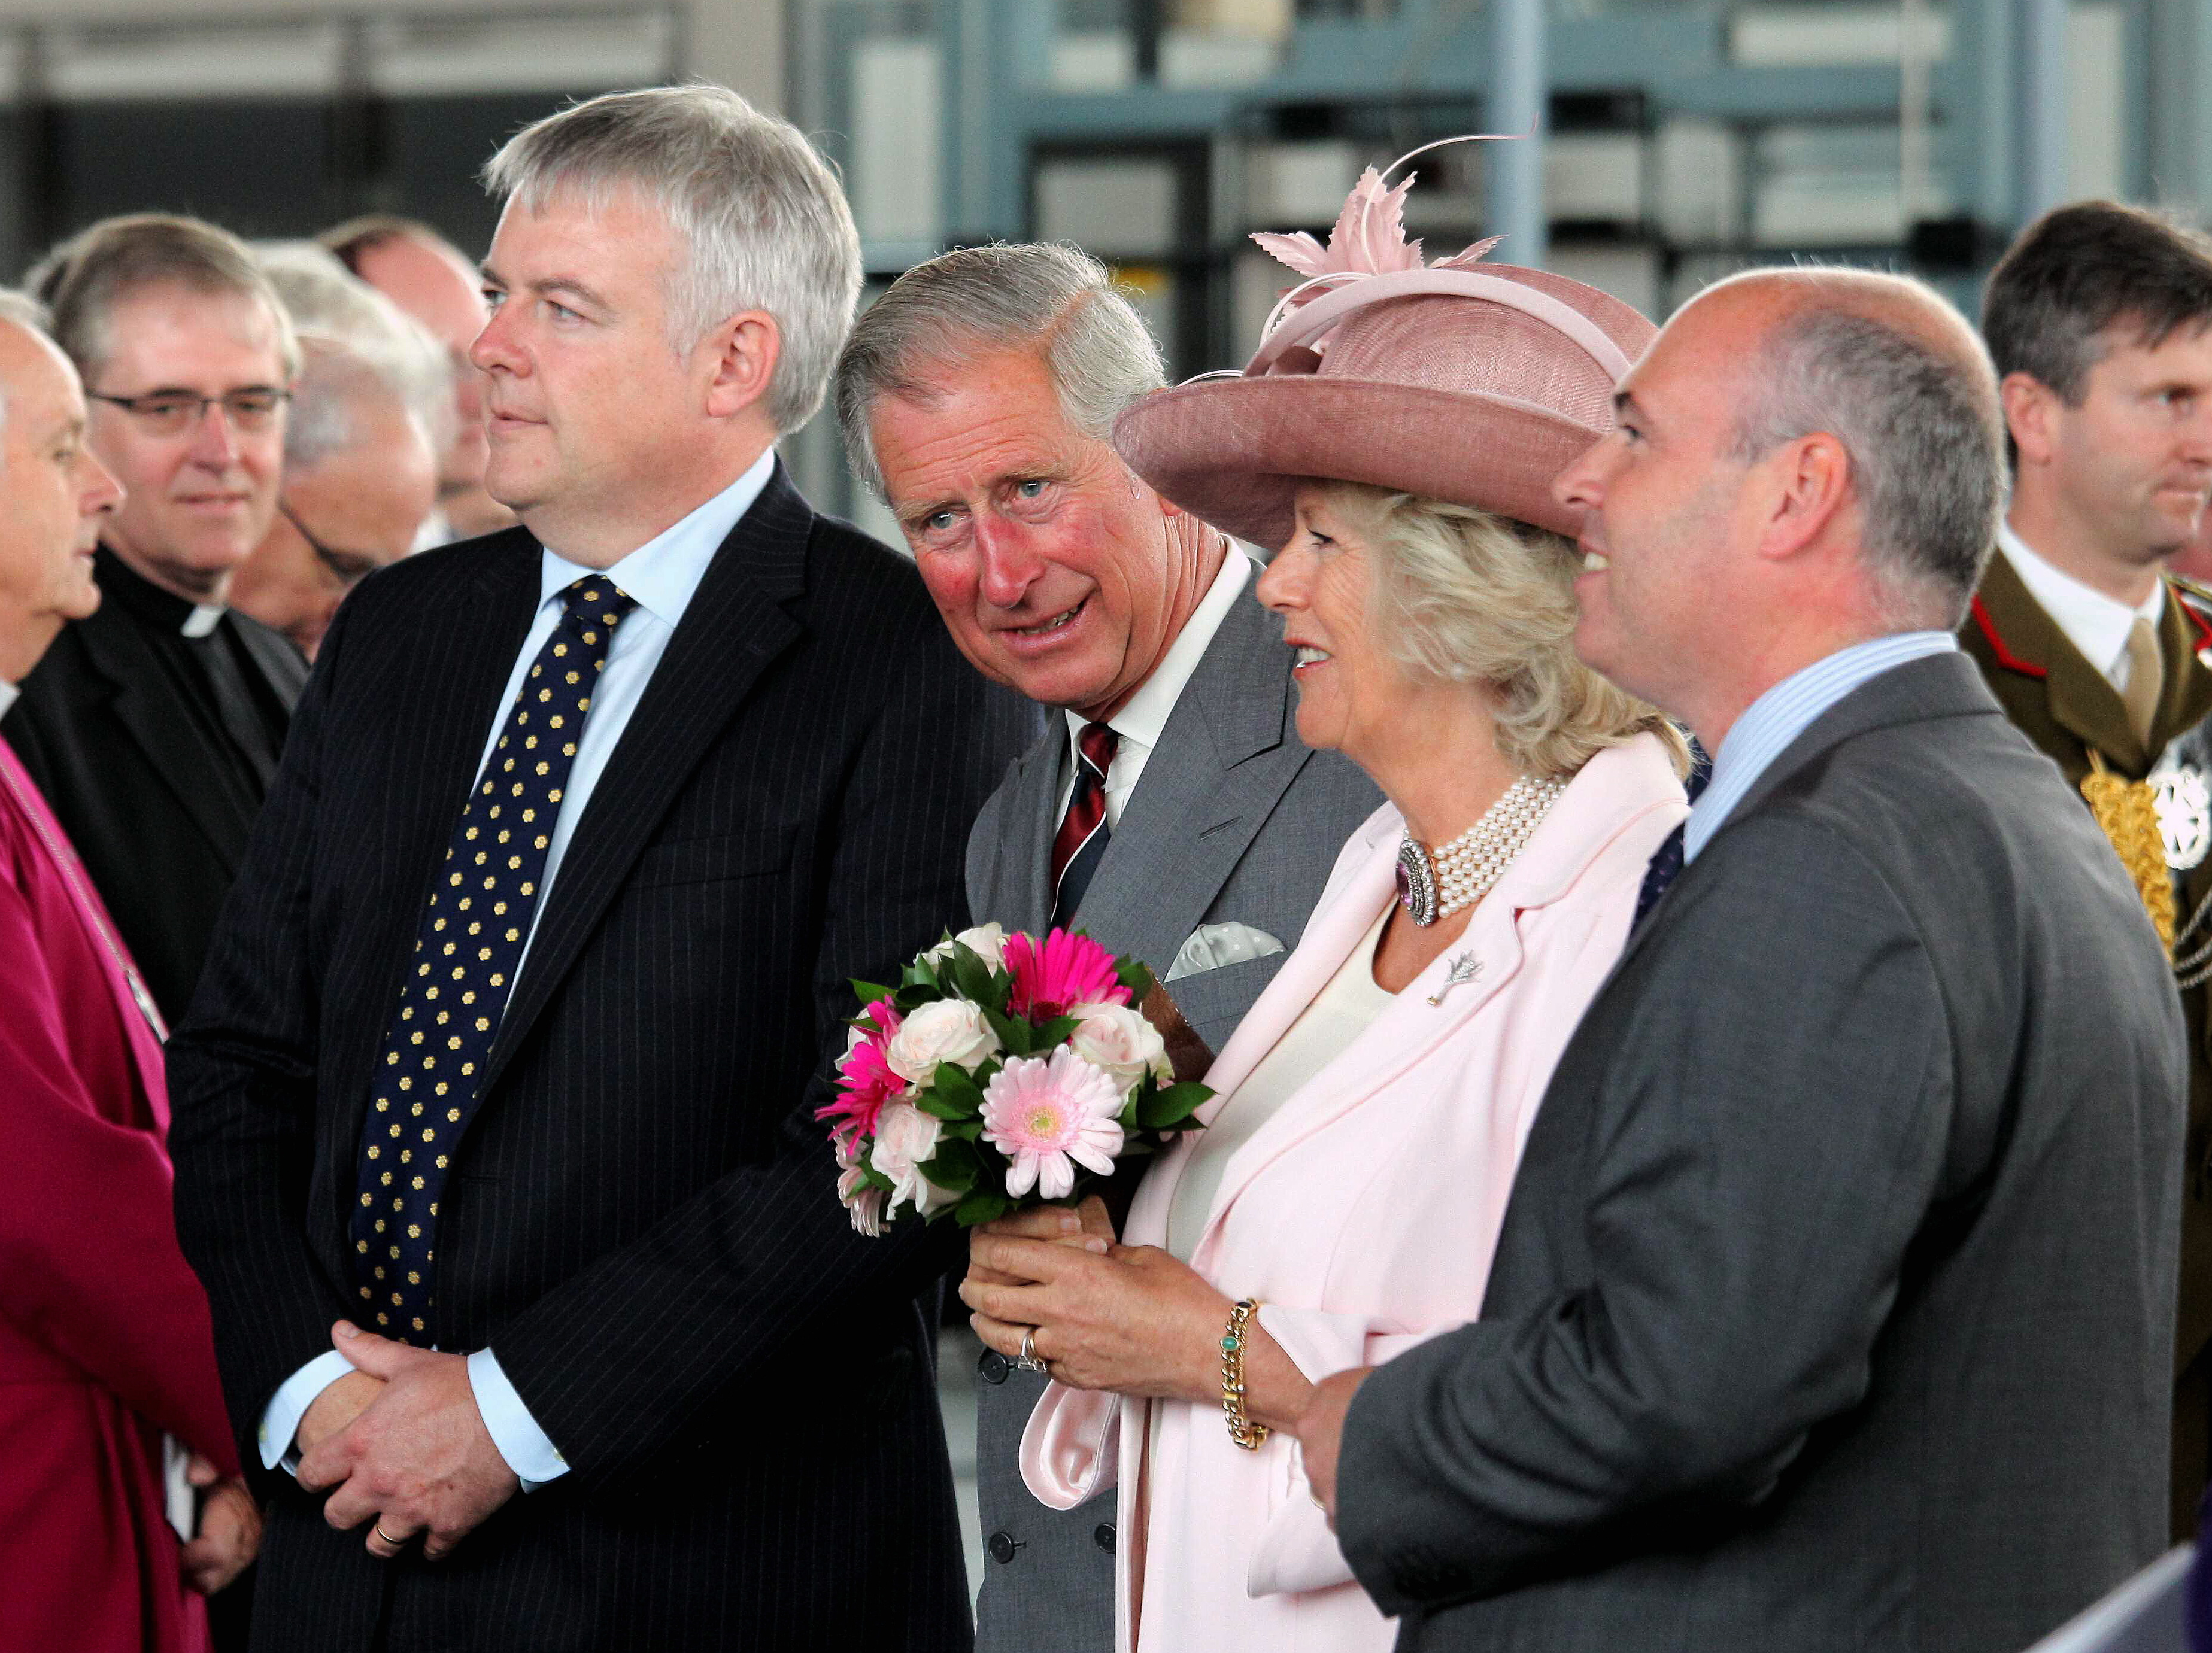 Pictured L-R: First Minister for Wales Carwyn Jones with Prince Charles and Camilla, the Duchess of Cornwall. Re: HRH The Queen Elizabeth accompanied by her husband, Philip, The Duke of Edinburgh and Charles The Prince of Wales and his wife Camilla, The Duchess of Cornwall, visiting the Welsh Assembly Parliament in Cardiff Bay. Tuesday 07 June 2011